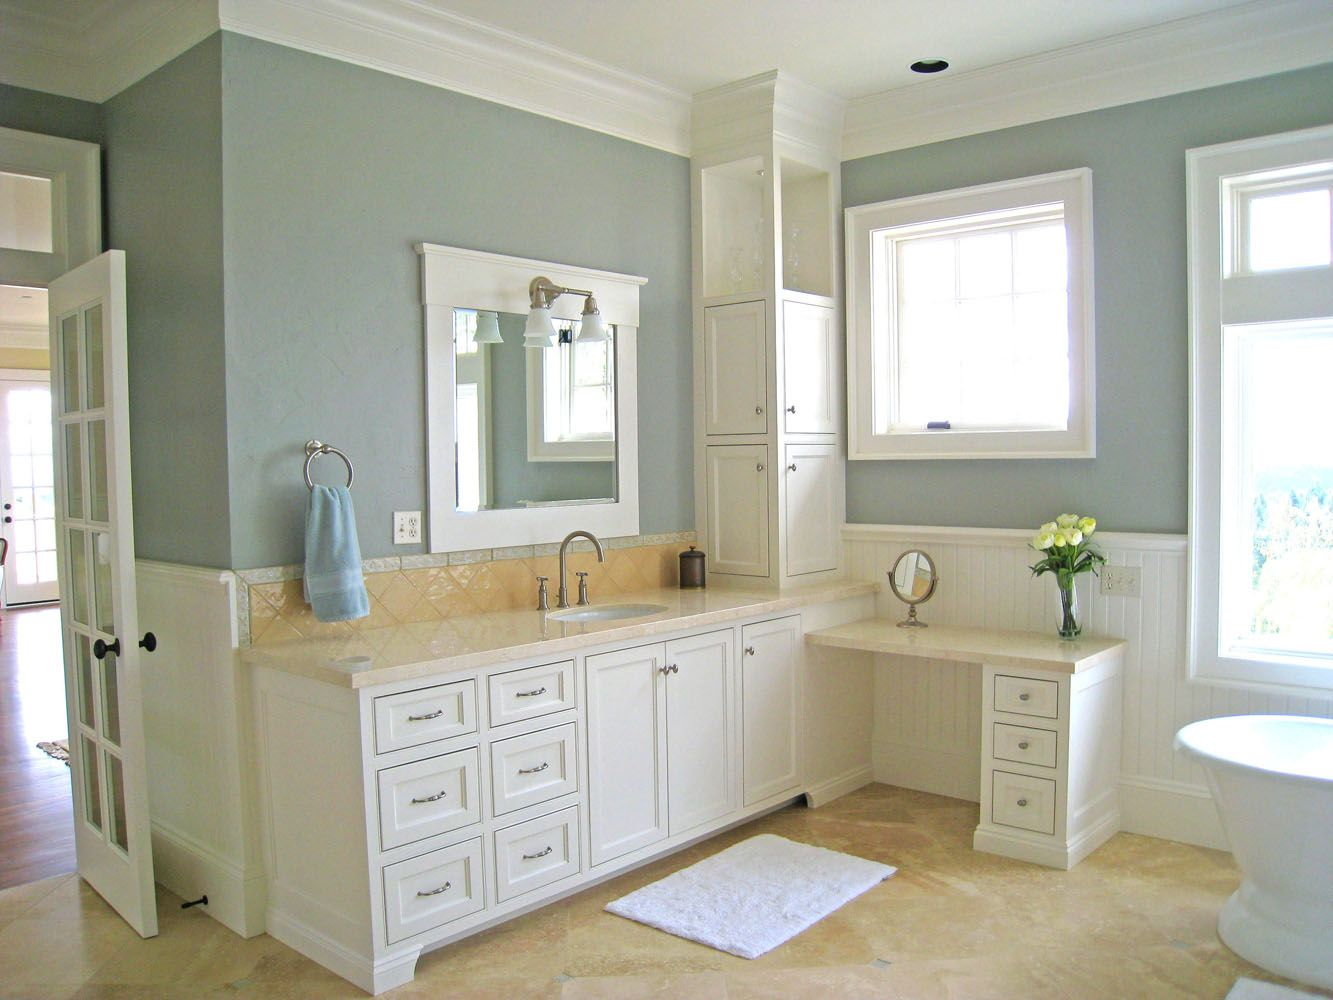 light and airy bathroom painting ideas | ideas, : interactive